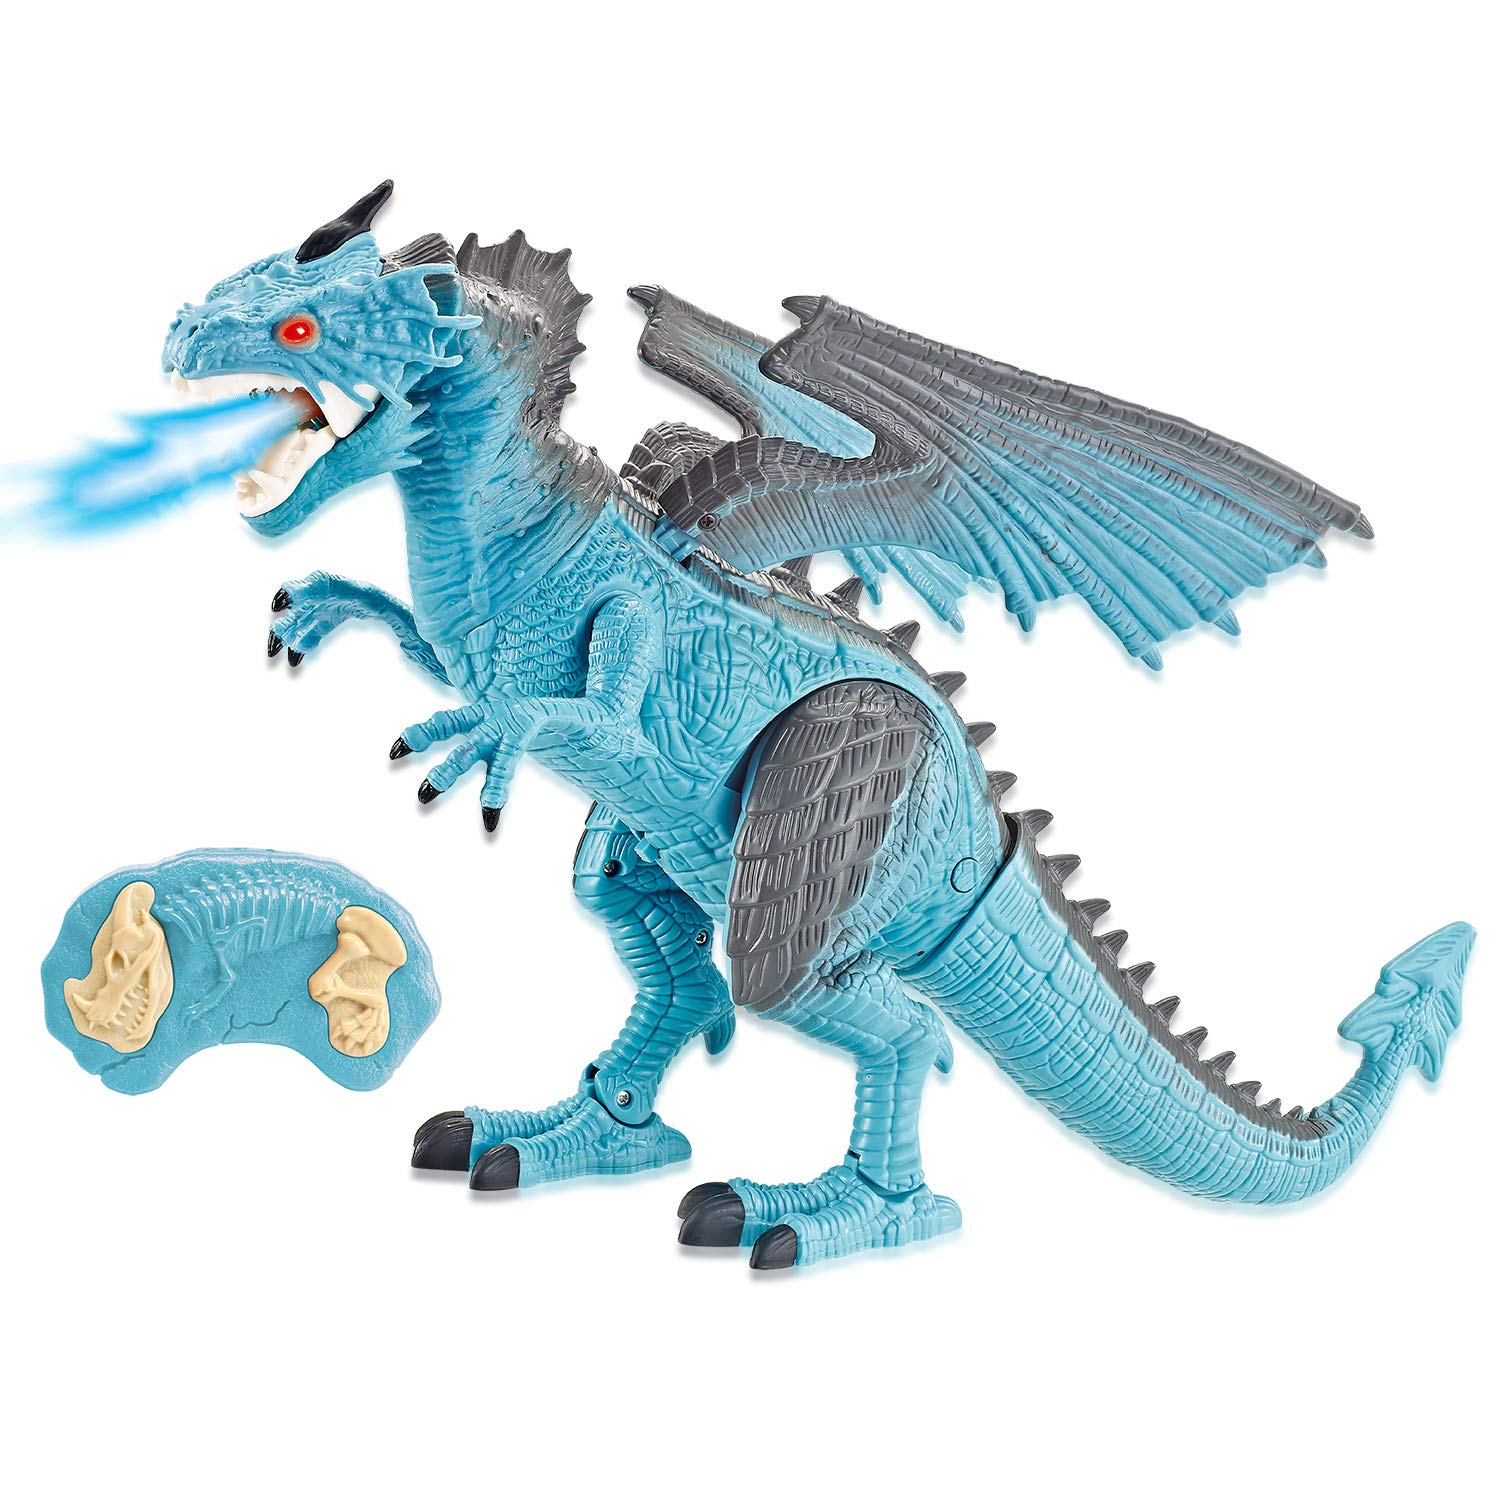 Liberty Imports Dino Planet Remote Control RC Walking Dinosaur Toy with Breathing Smoke, Shaking Head, Light Up Eyes and Sounds (Ice Dragon (with Smoke)) by Liberty Imports (Image #1)